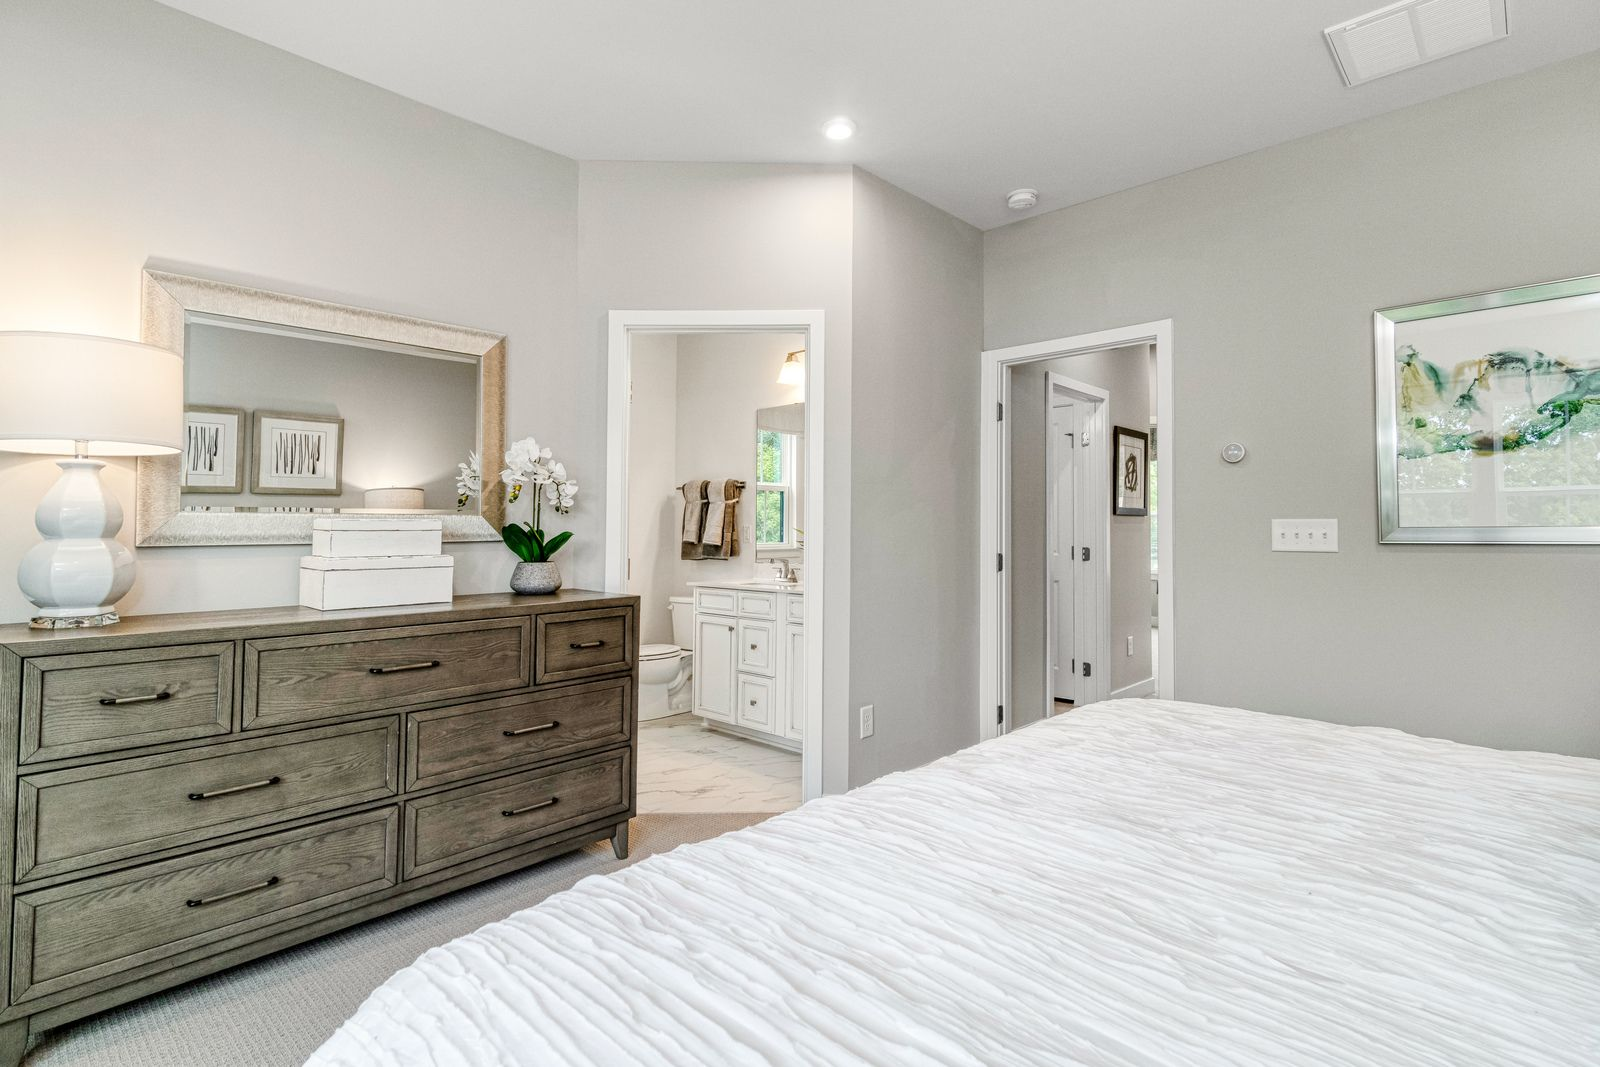 Bedroom featured in the Mozart 2-car garage By Ryan Homes in Richmond-Petersburg, VA